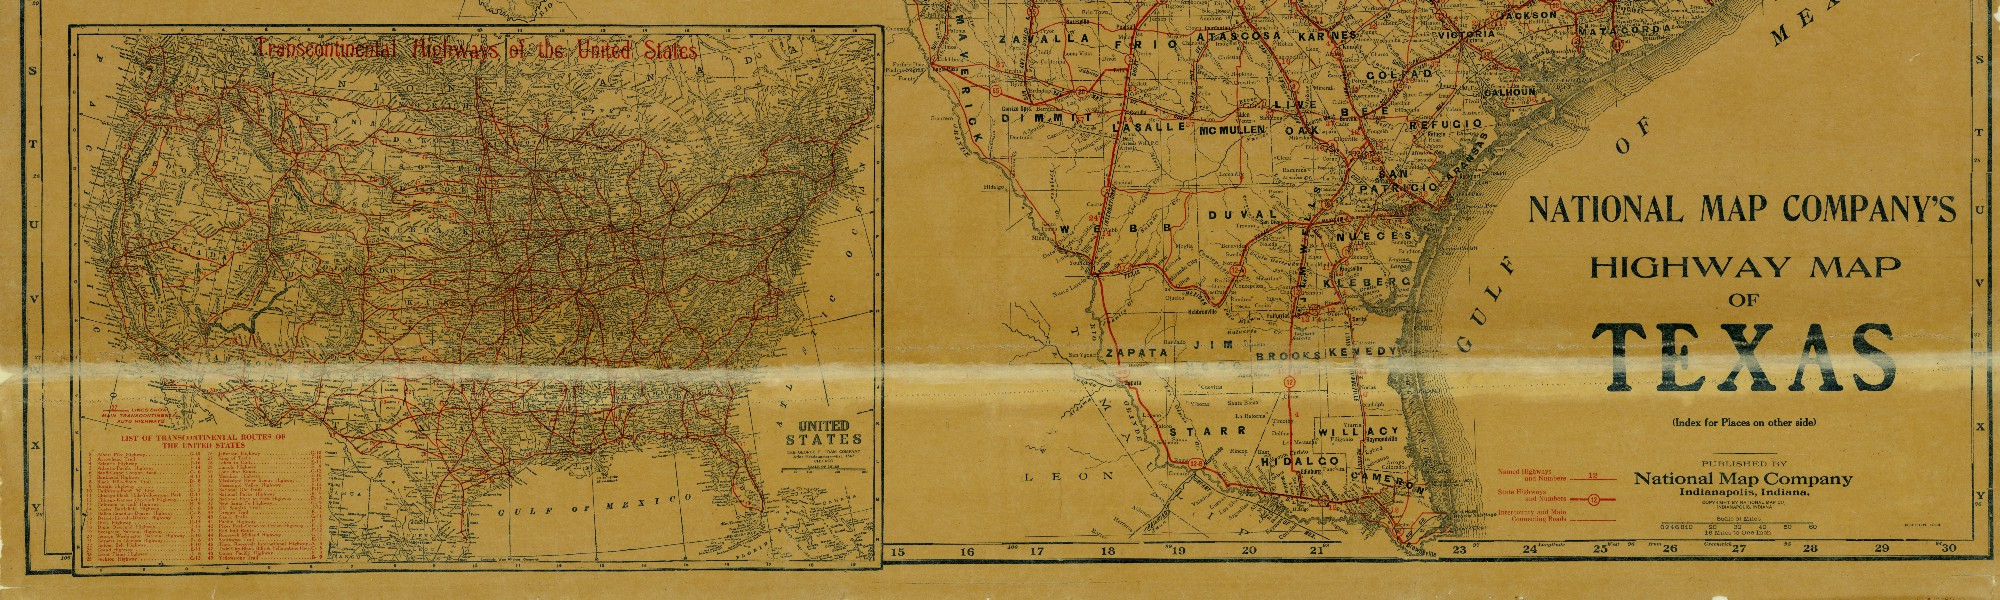 National Map Companys Highway Map Of Texas Save Texas - Texas highway map